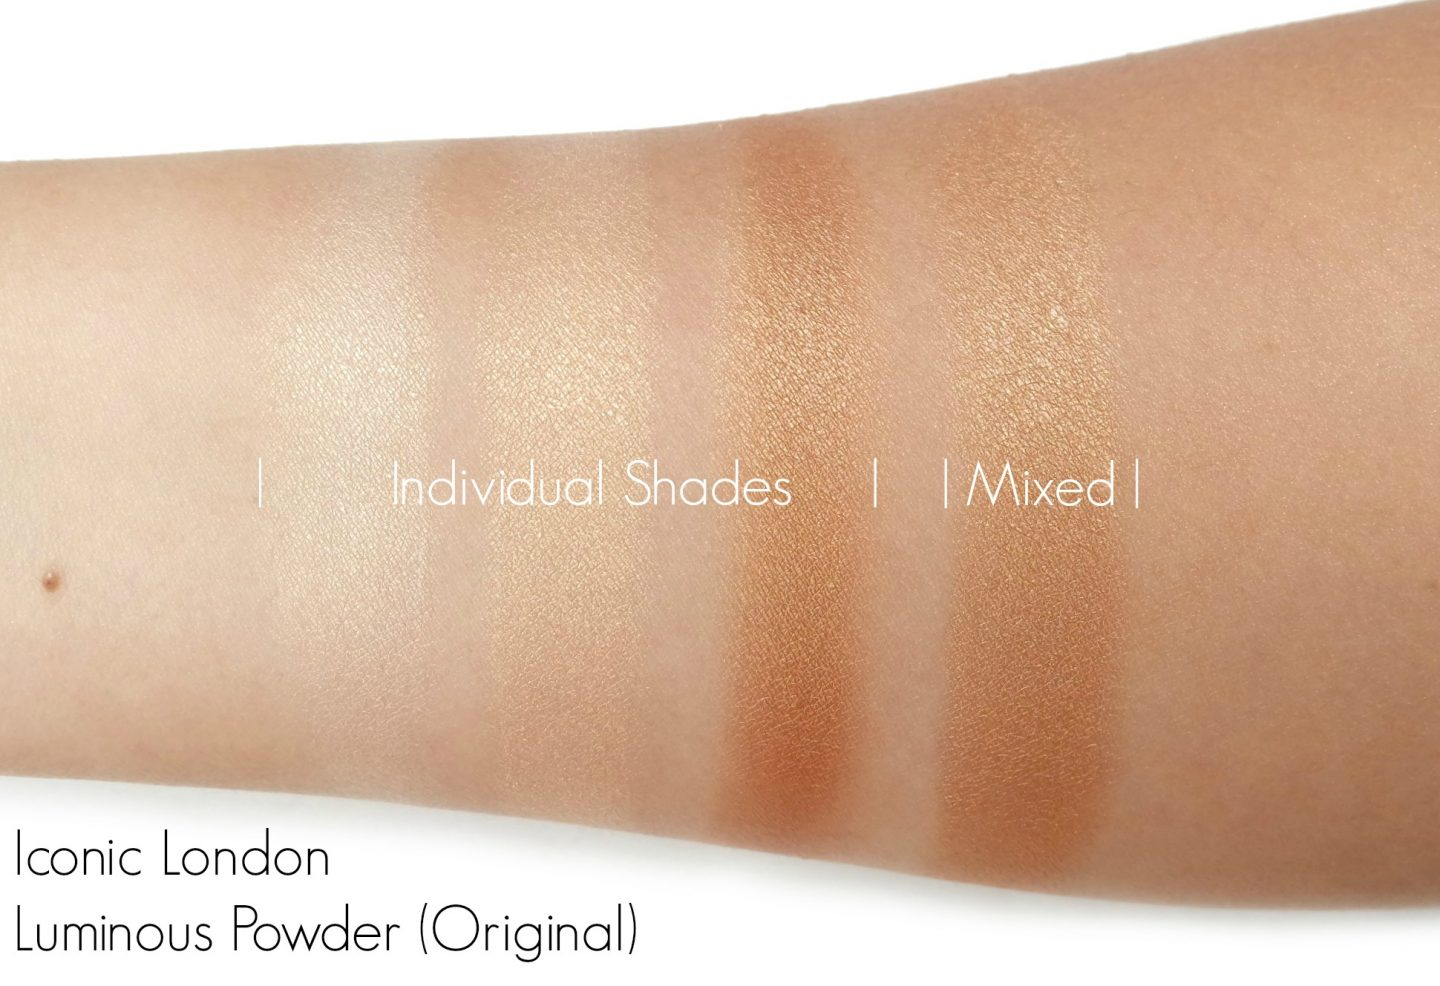 ICONIC London Luminous Powder Original